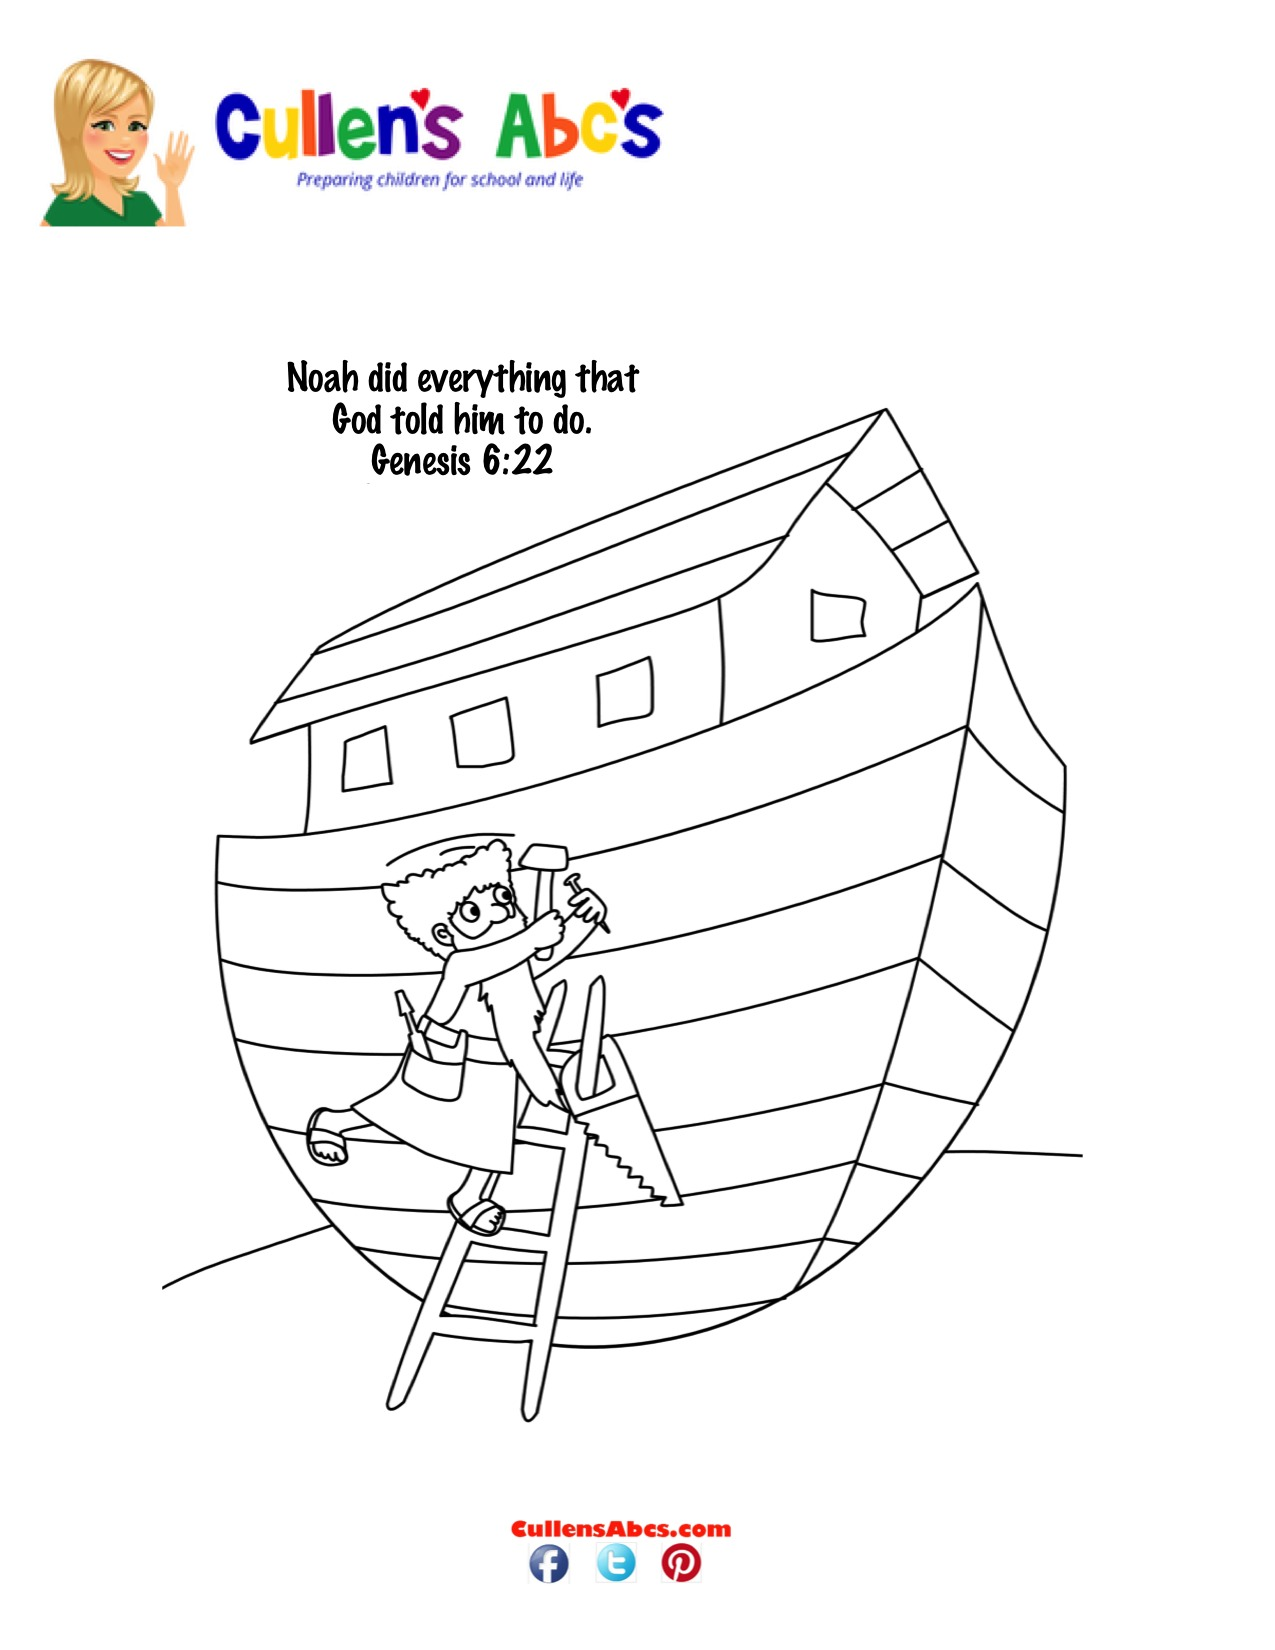 noahs ark coloring page noahus ark coloring pages with noahs ark